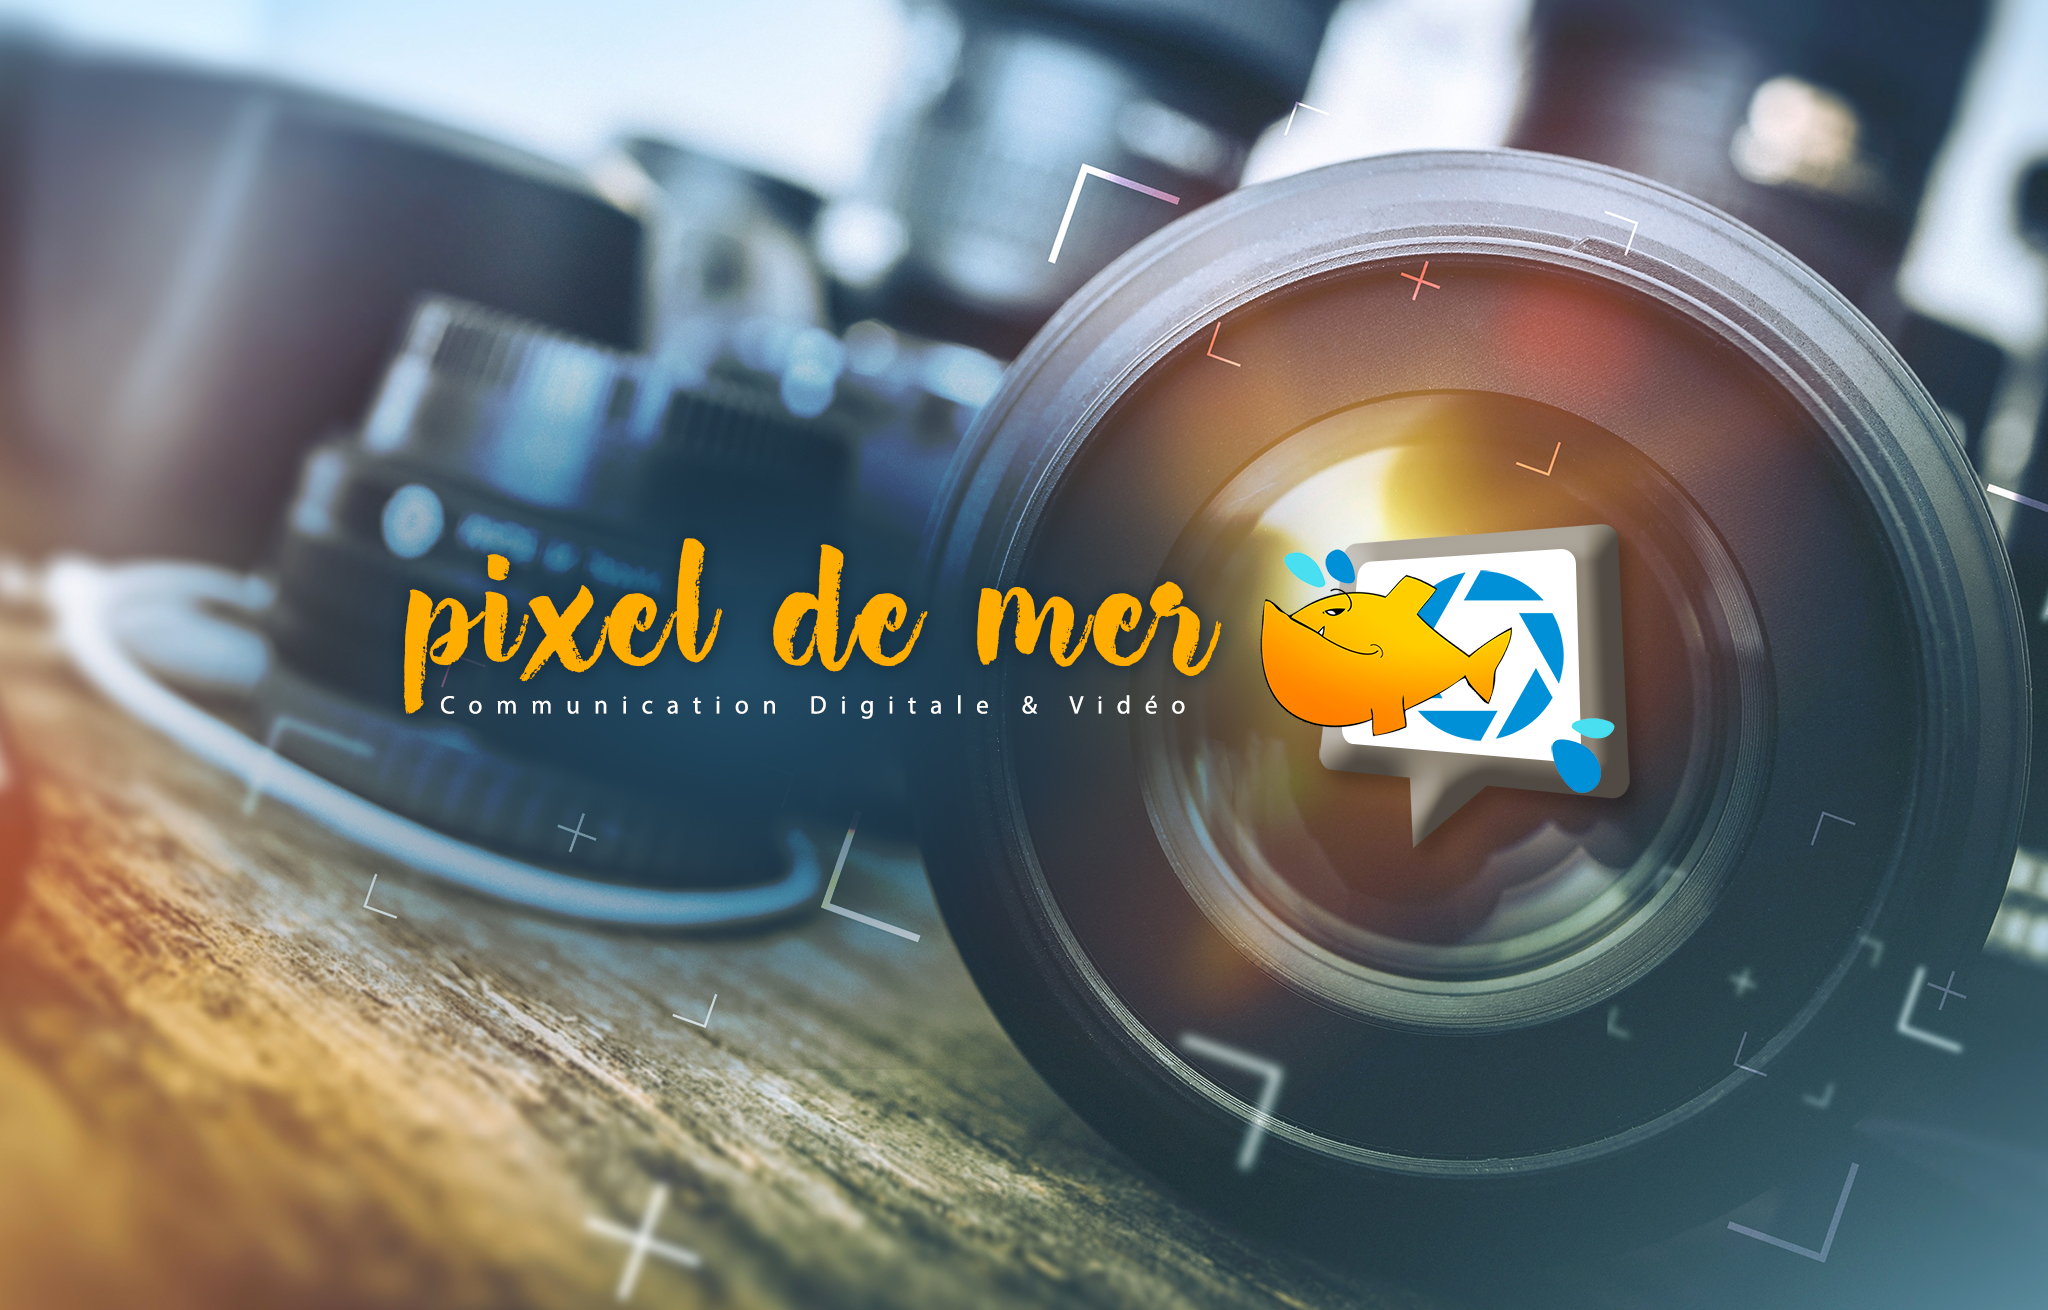 Pixel; pixel de mer; Vidéo; Vannes; Morbihan; tournage; vidéo professionnelle; teaser; fiction; caméraman; agence communication; Gérald Serrault; Bretagne; clip vidéo; montage; interview; reporter; journaliste; correspondant; Production audiovisuelle; publicité; film publicitaire; billboard; HD; Full HD; Ronin; Ronin SC; GH5 ; GH4. Canon 5D; enregistrement; événementiel; reportage; télévision; drone; motion; motion design; institutionnel; association; mairie; office de tourisme; tourisme; graphisme; graphiste; caméra; appareil photo; réalisation; diffusion; réseaux sociaux; film entreprise; direct; multi caméra; adobe premiere; after effects; youtube; Vimeo; twitter; Facebook; mariage; atelier vidéo; VHS; Hi8; Video 8; Sony; event; mixage; sound design; red; plongée sous-marine; captation; tuto; 360°;